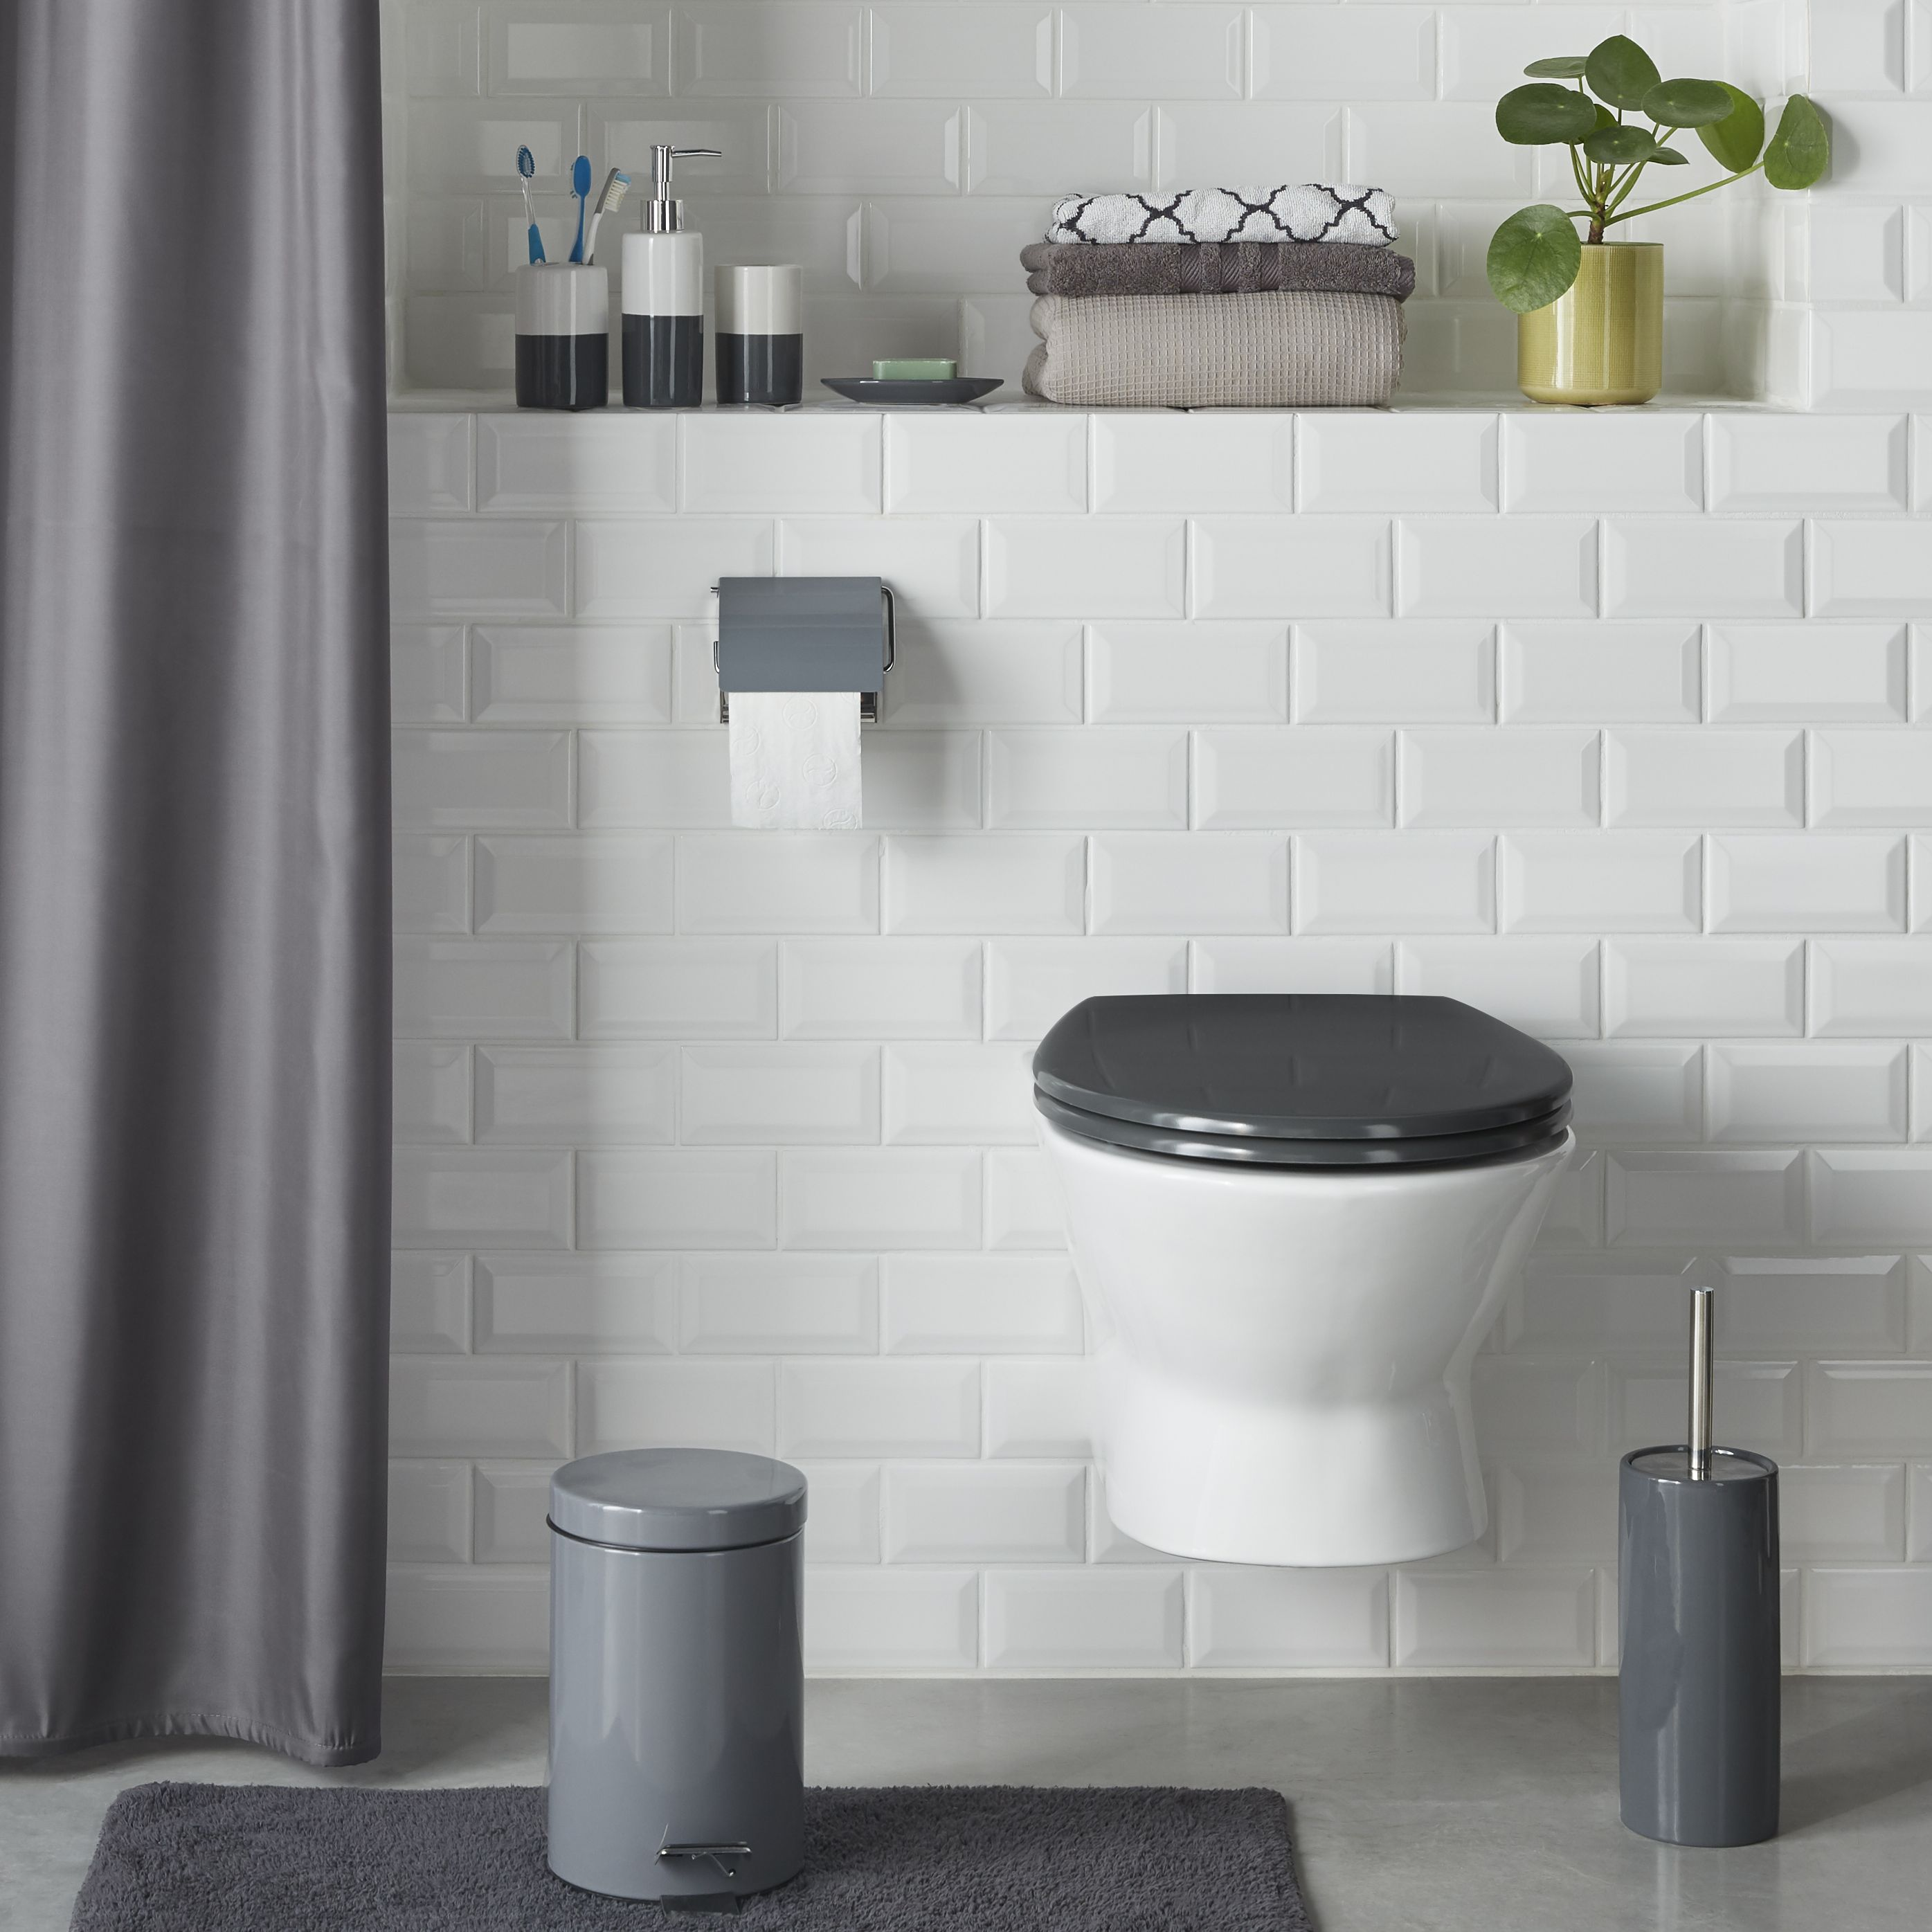 Bathroom Accessories | Bathroom Fittings & Fixtures